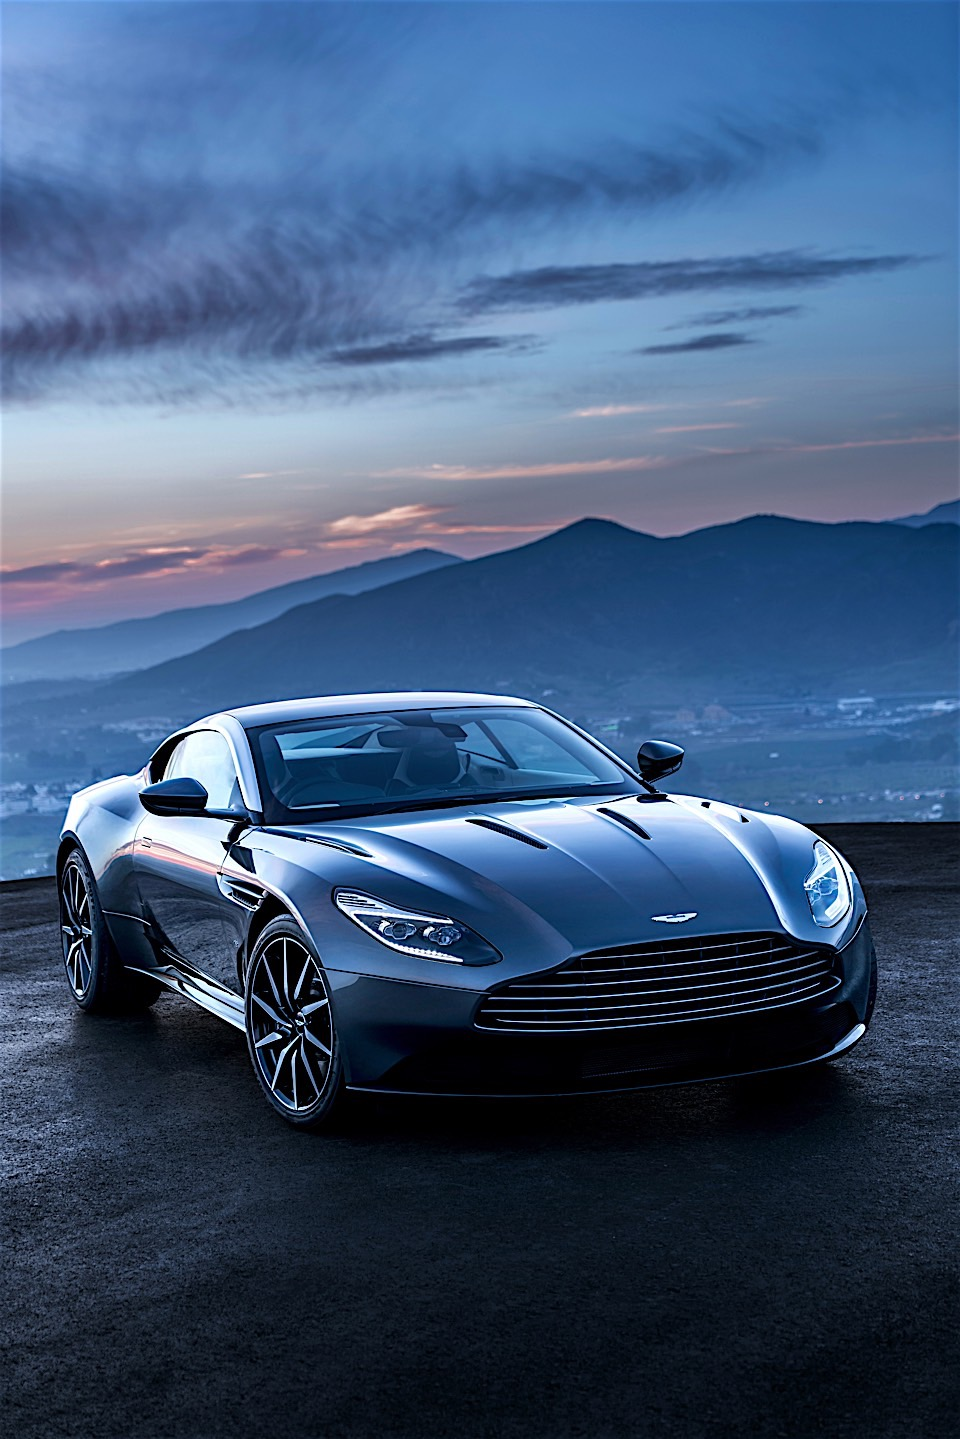 aston martin db11 latest transcontinental tourer 95 octane. Black Bedroom Furniture Sets. Home Design Ideas